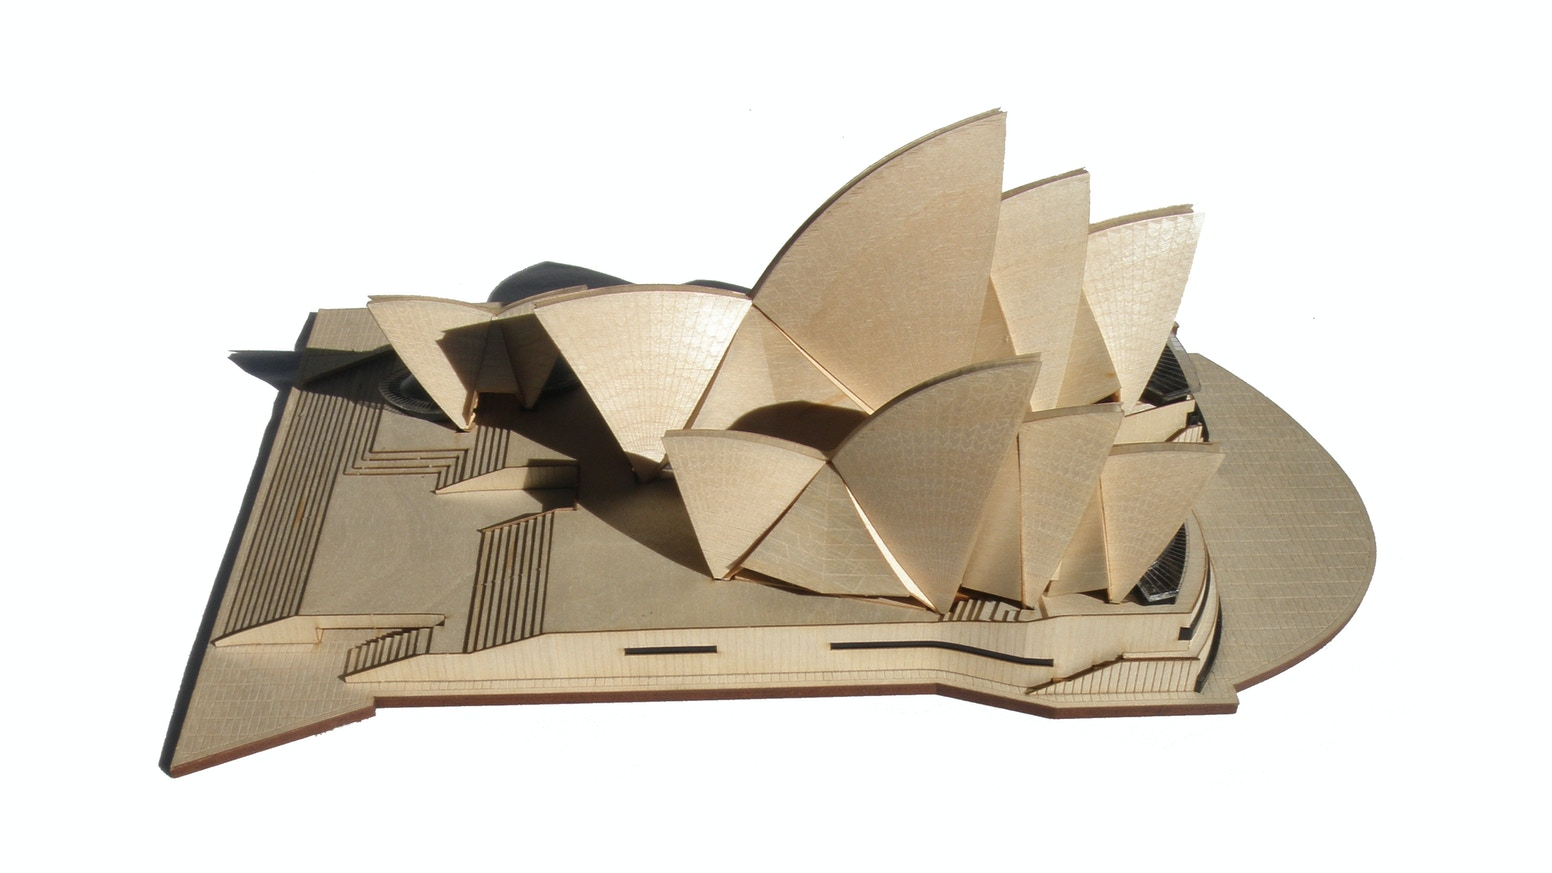 Sydney Opera House Architectural Model Kit By Marcus Bree